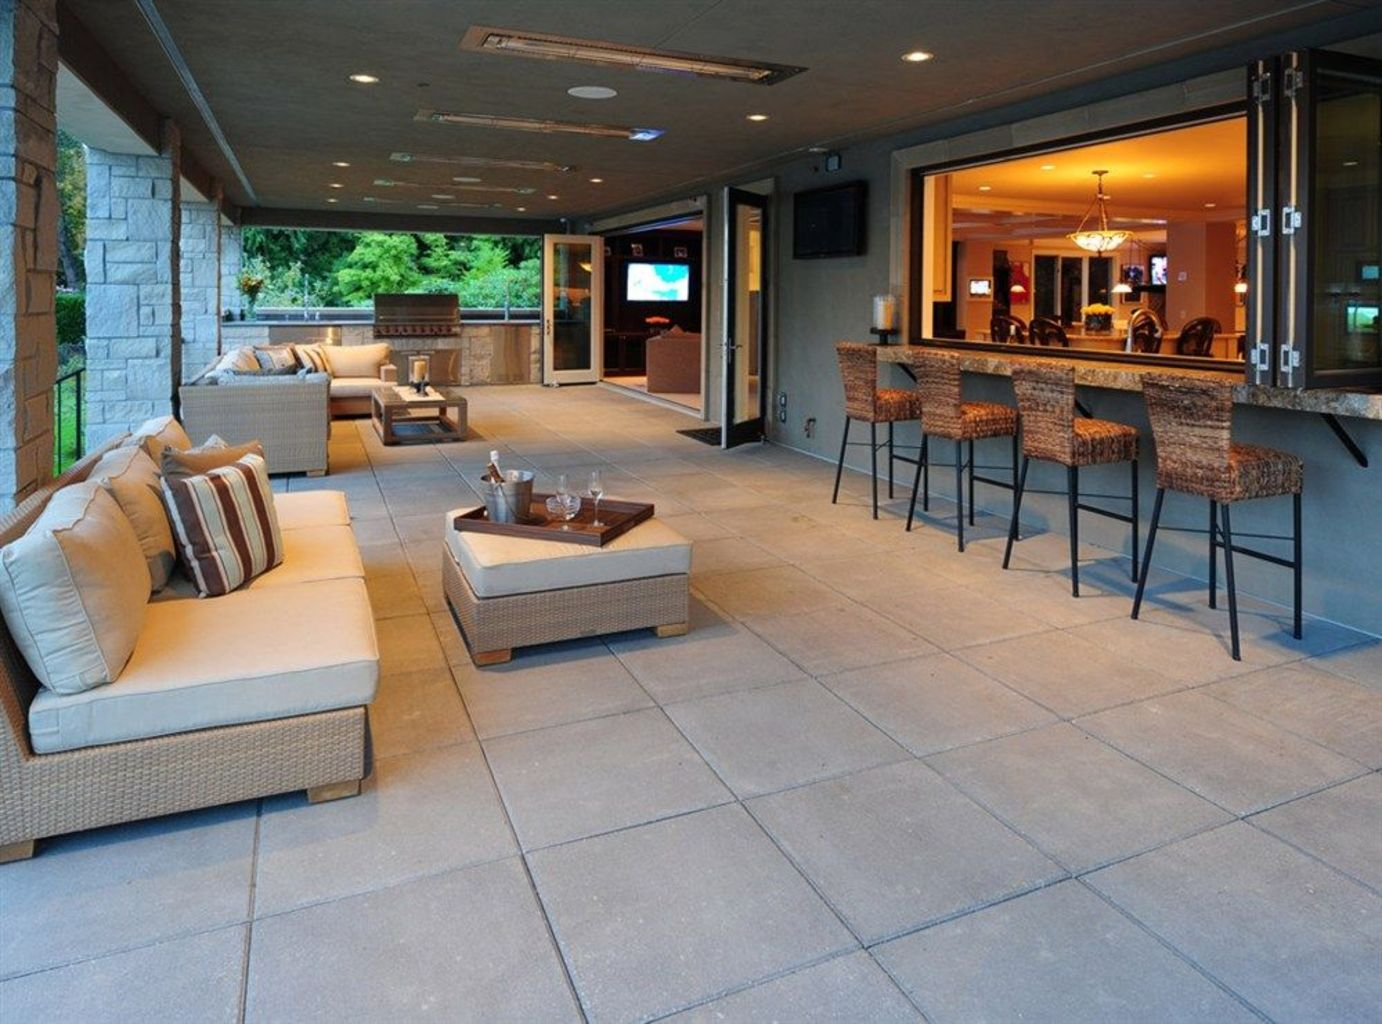 Back porch design ideas that perfect for every home as special space to make it anything you want Part (16)